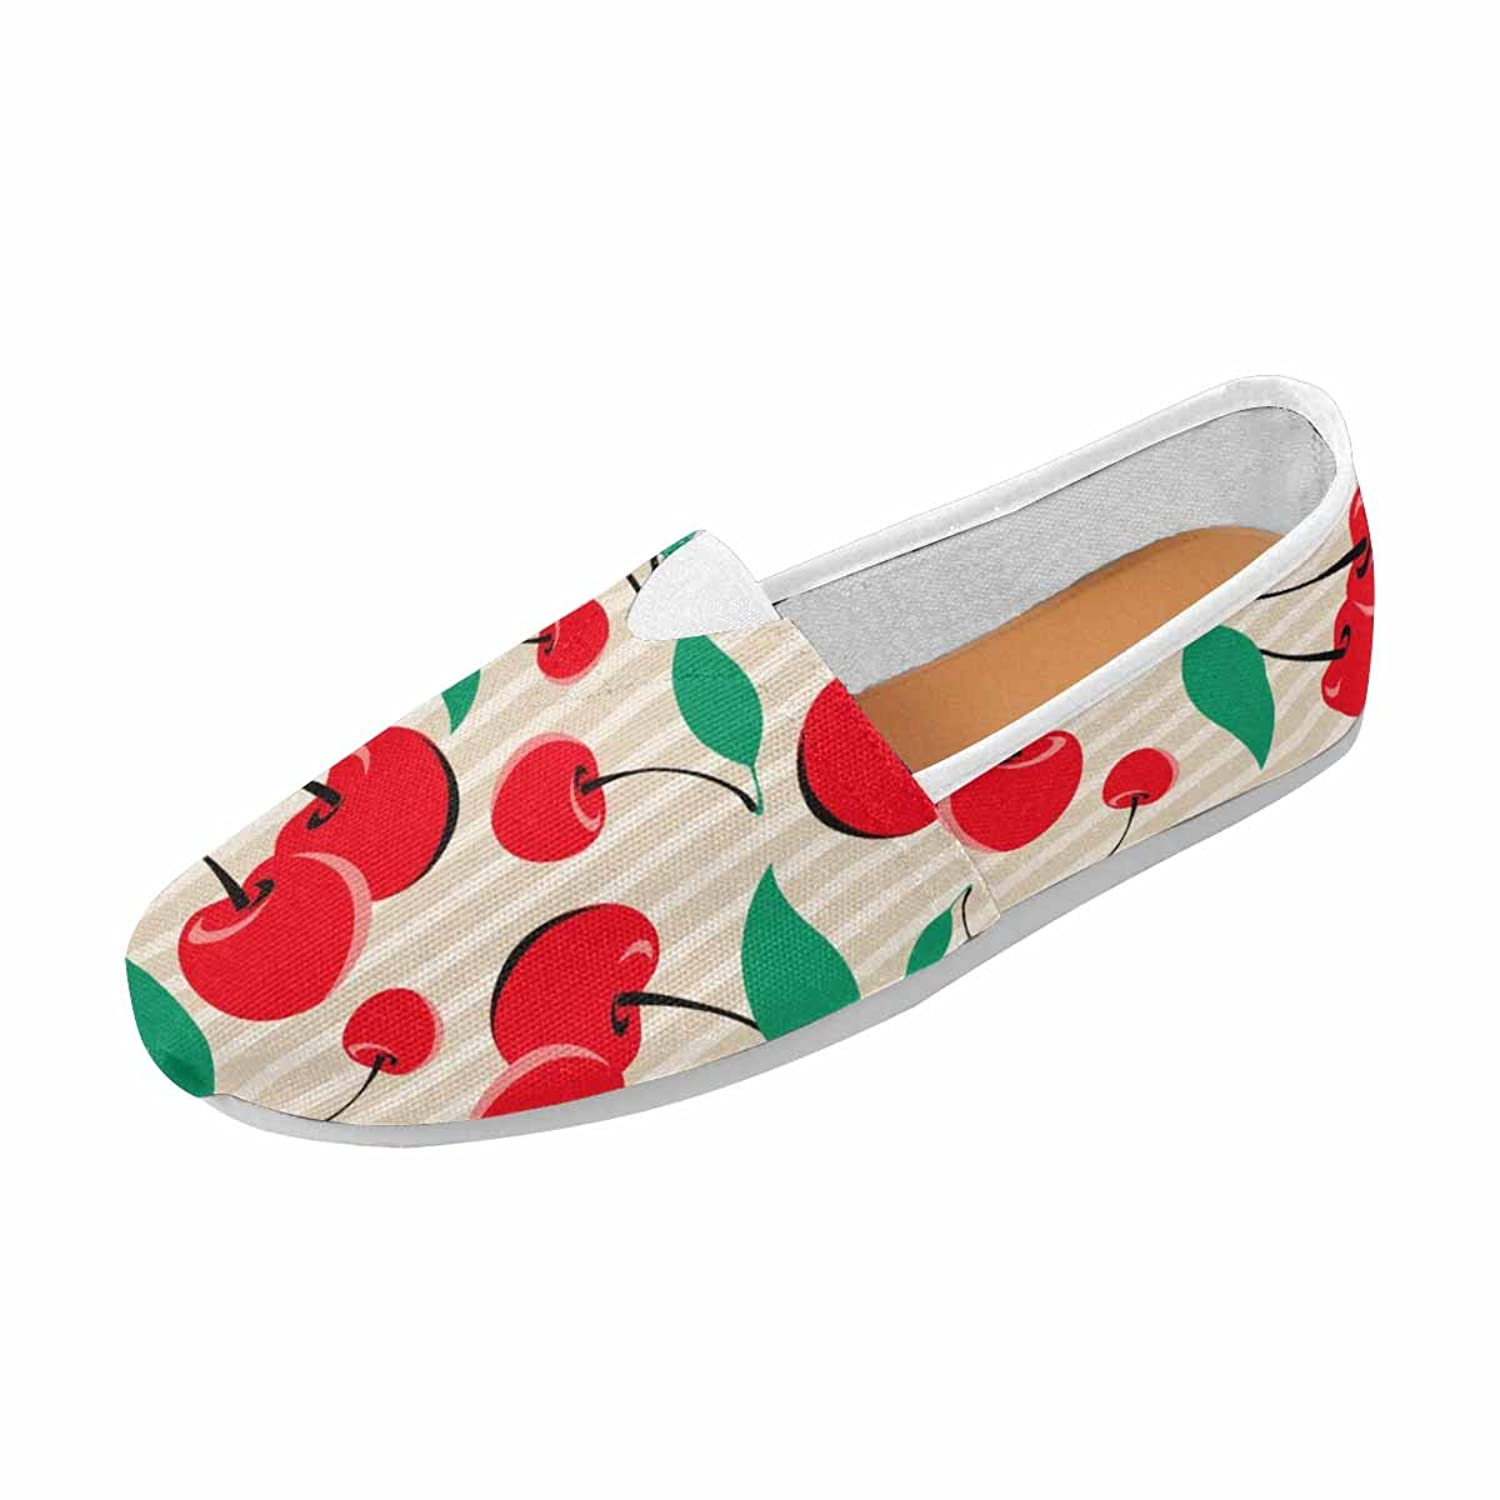 InterestPrint Women's Loafers Classic Casual Canvas Slip on Shoes Sneakers Flats Red Cherries from My Pattern Collection